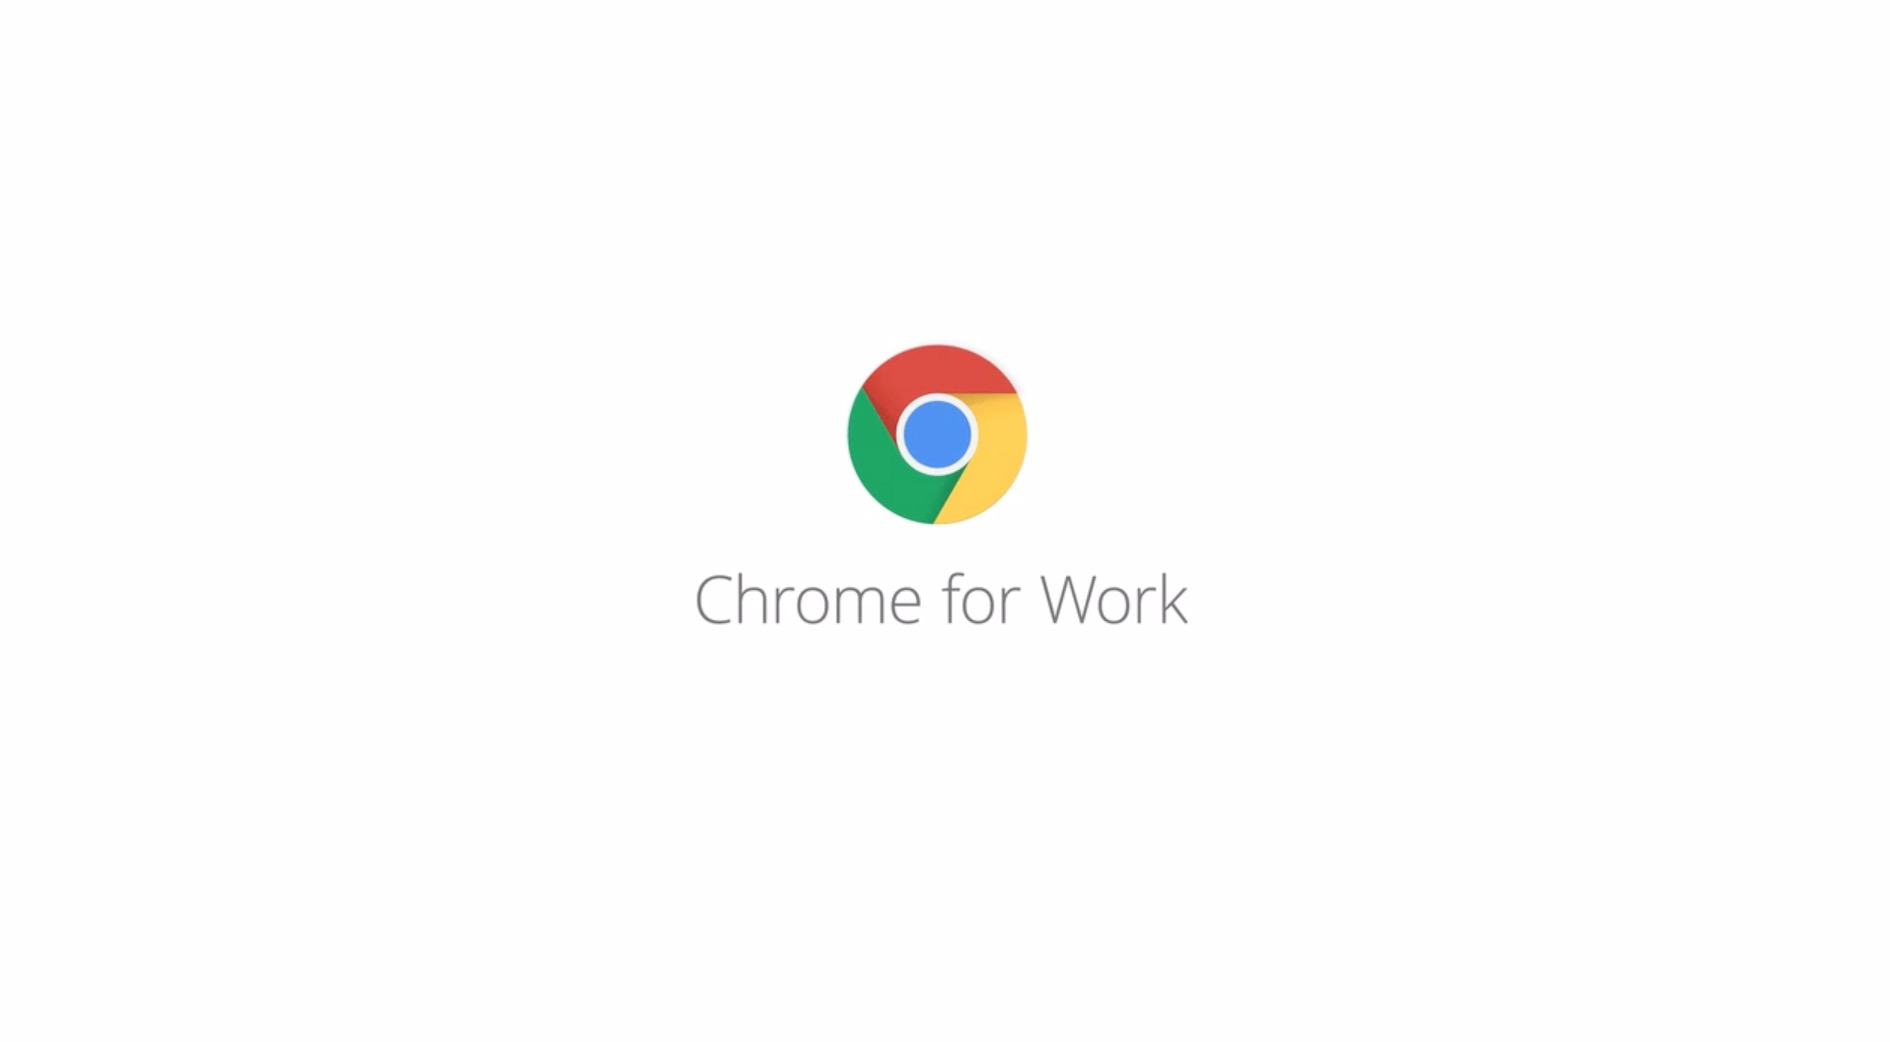 Google - Chrome for Work